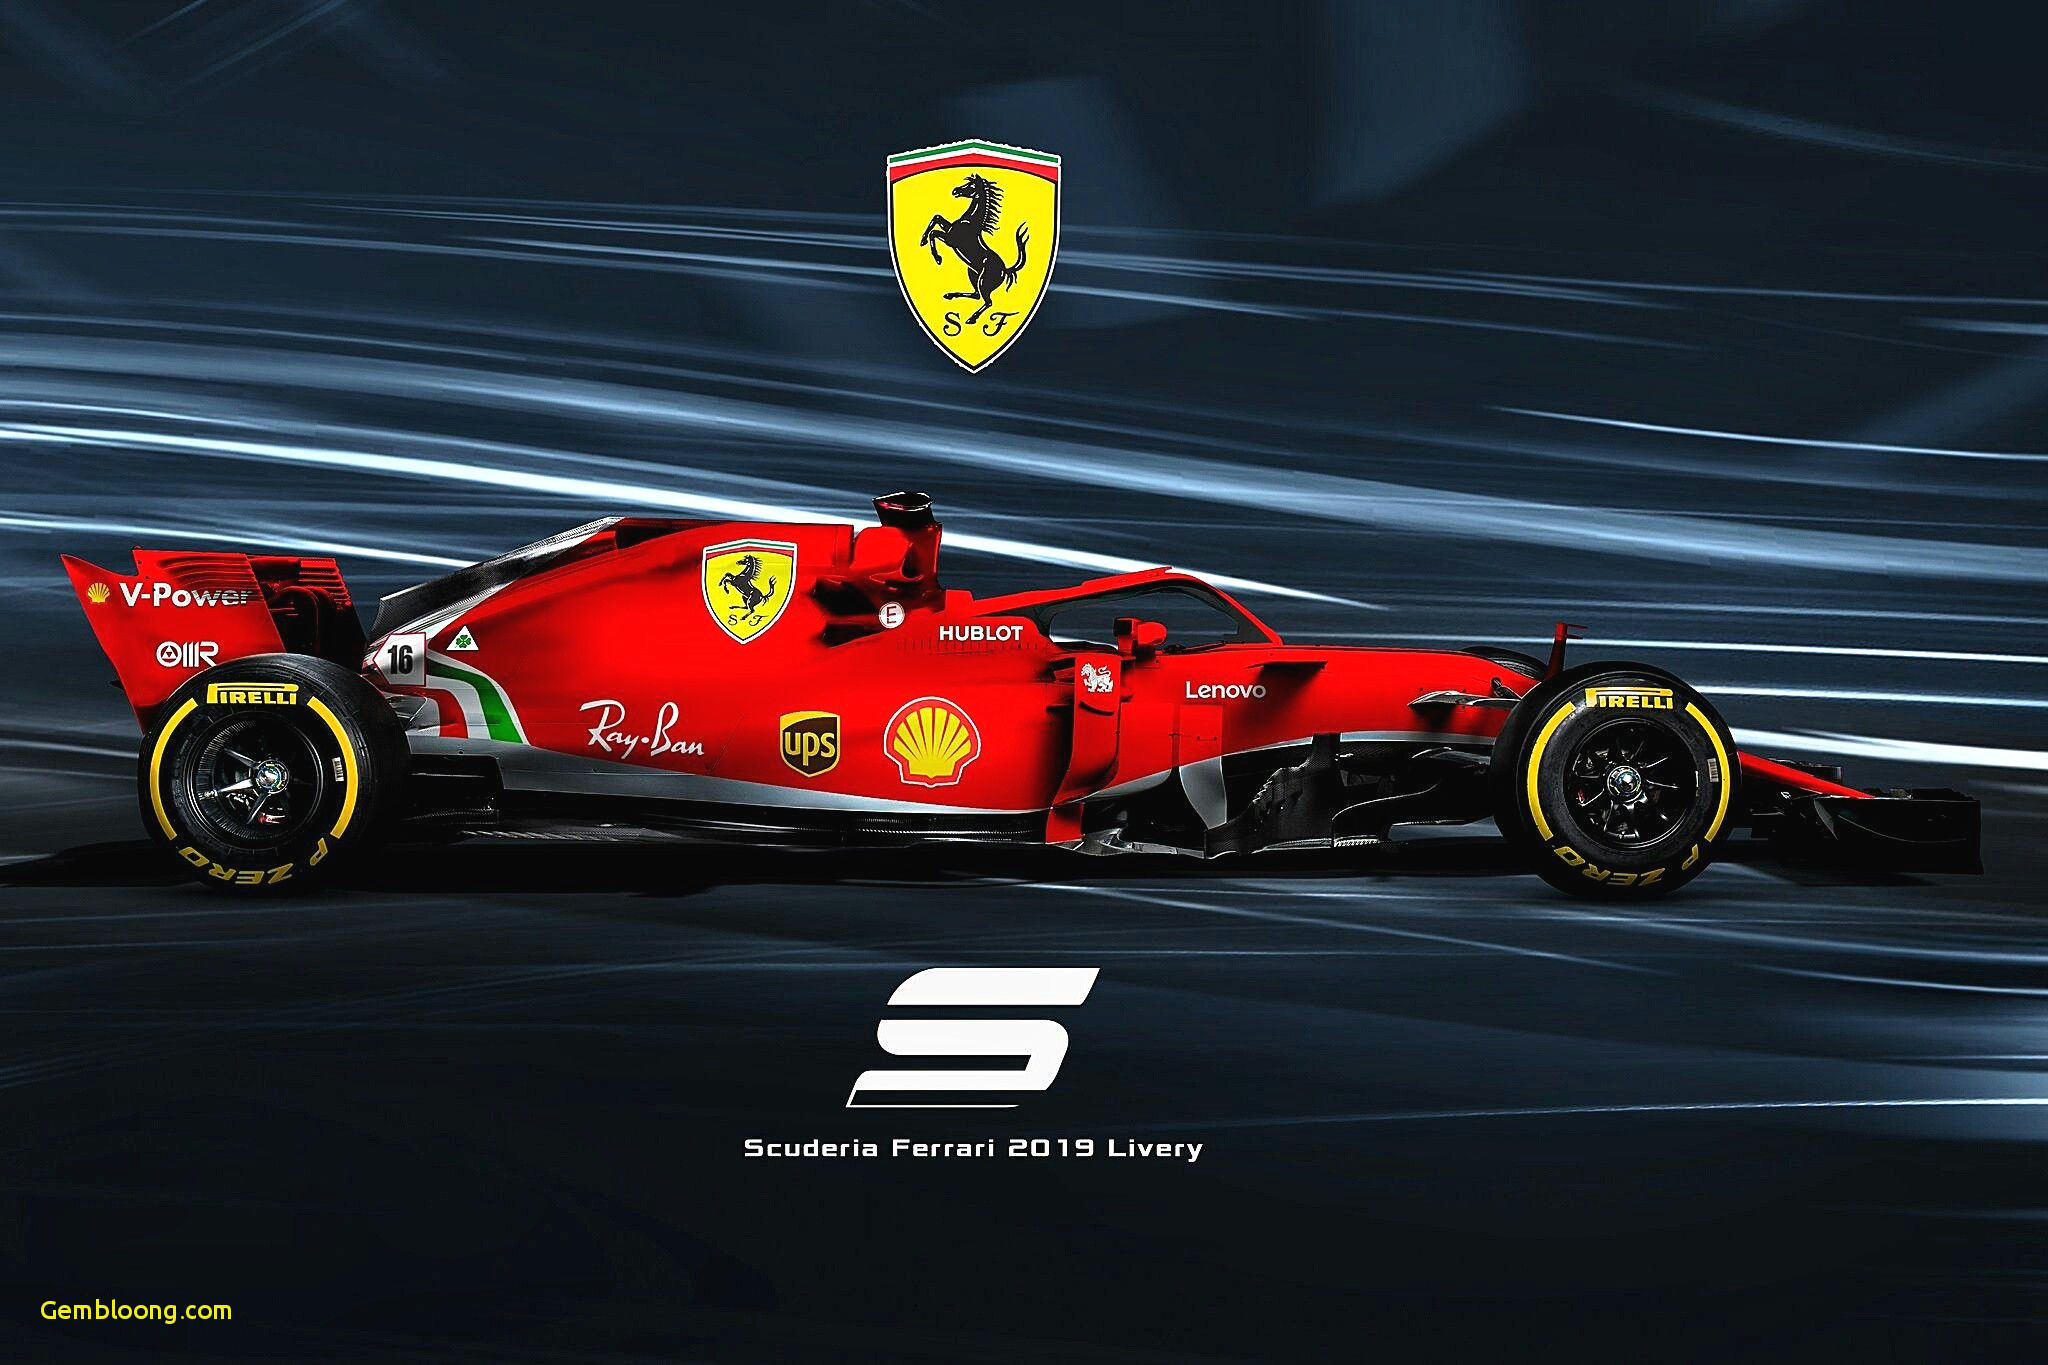 Download Best Of Ferrari F1 Wallpaper Wallpaper [2048x1365] 15 2048x1365